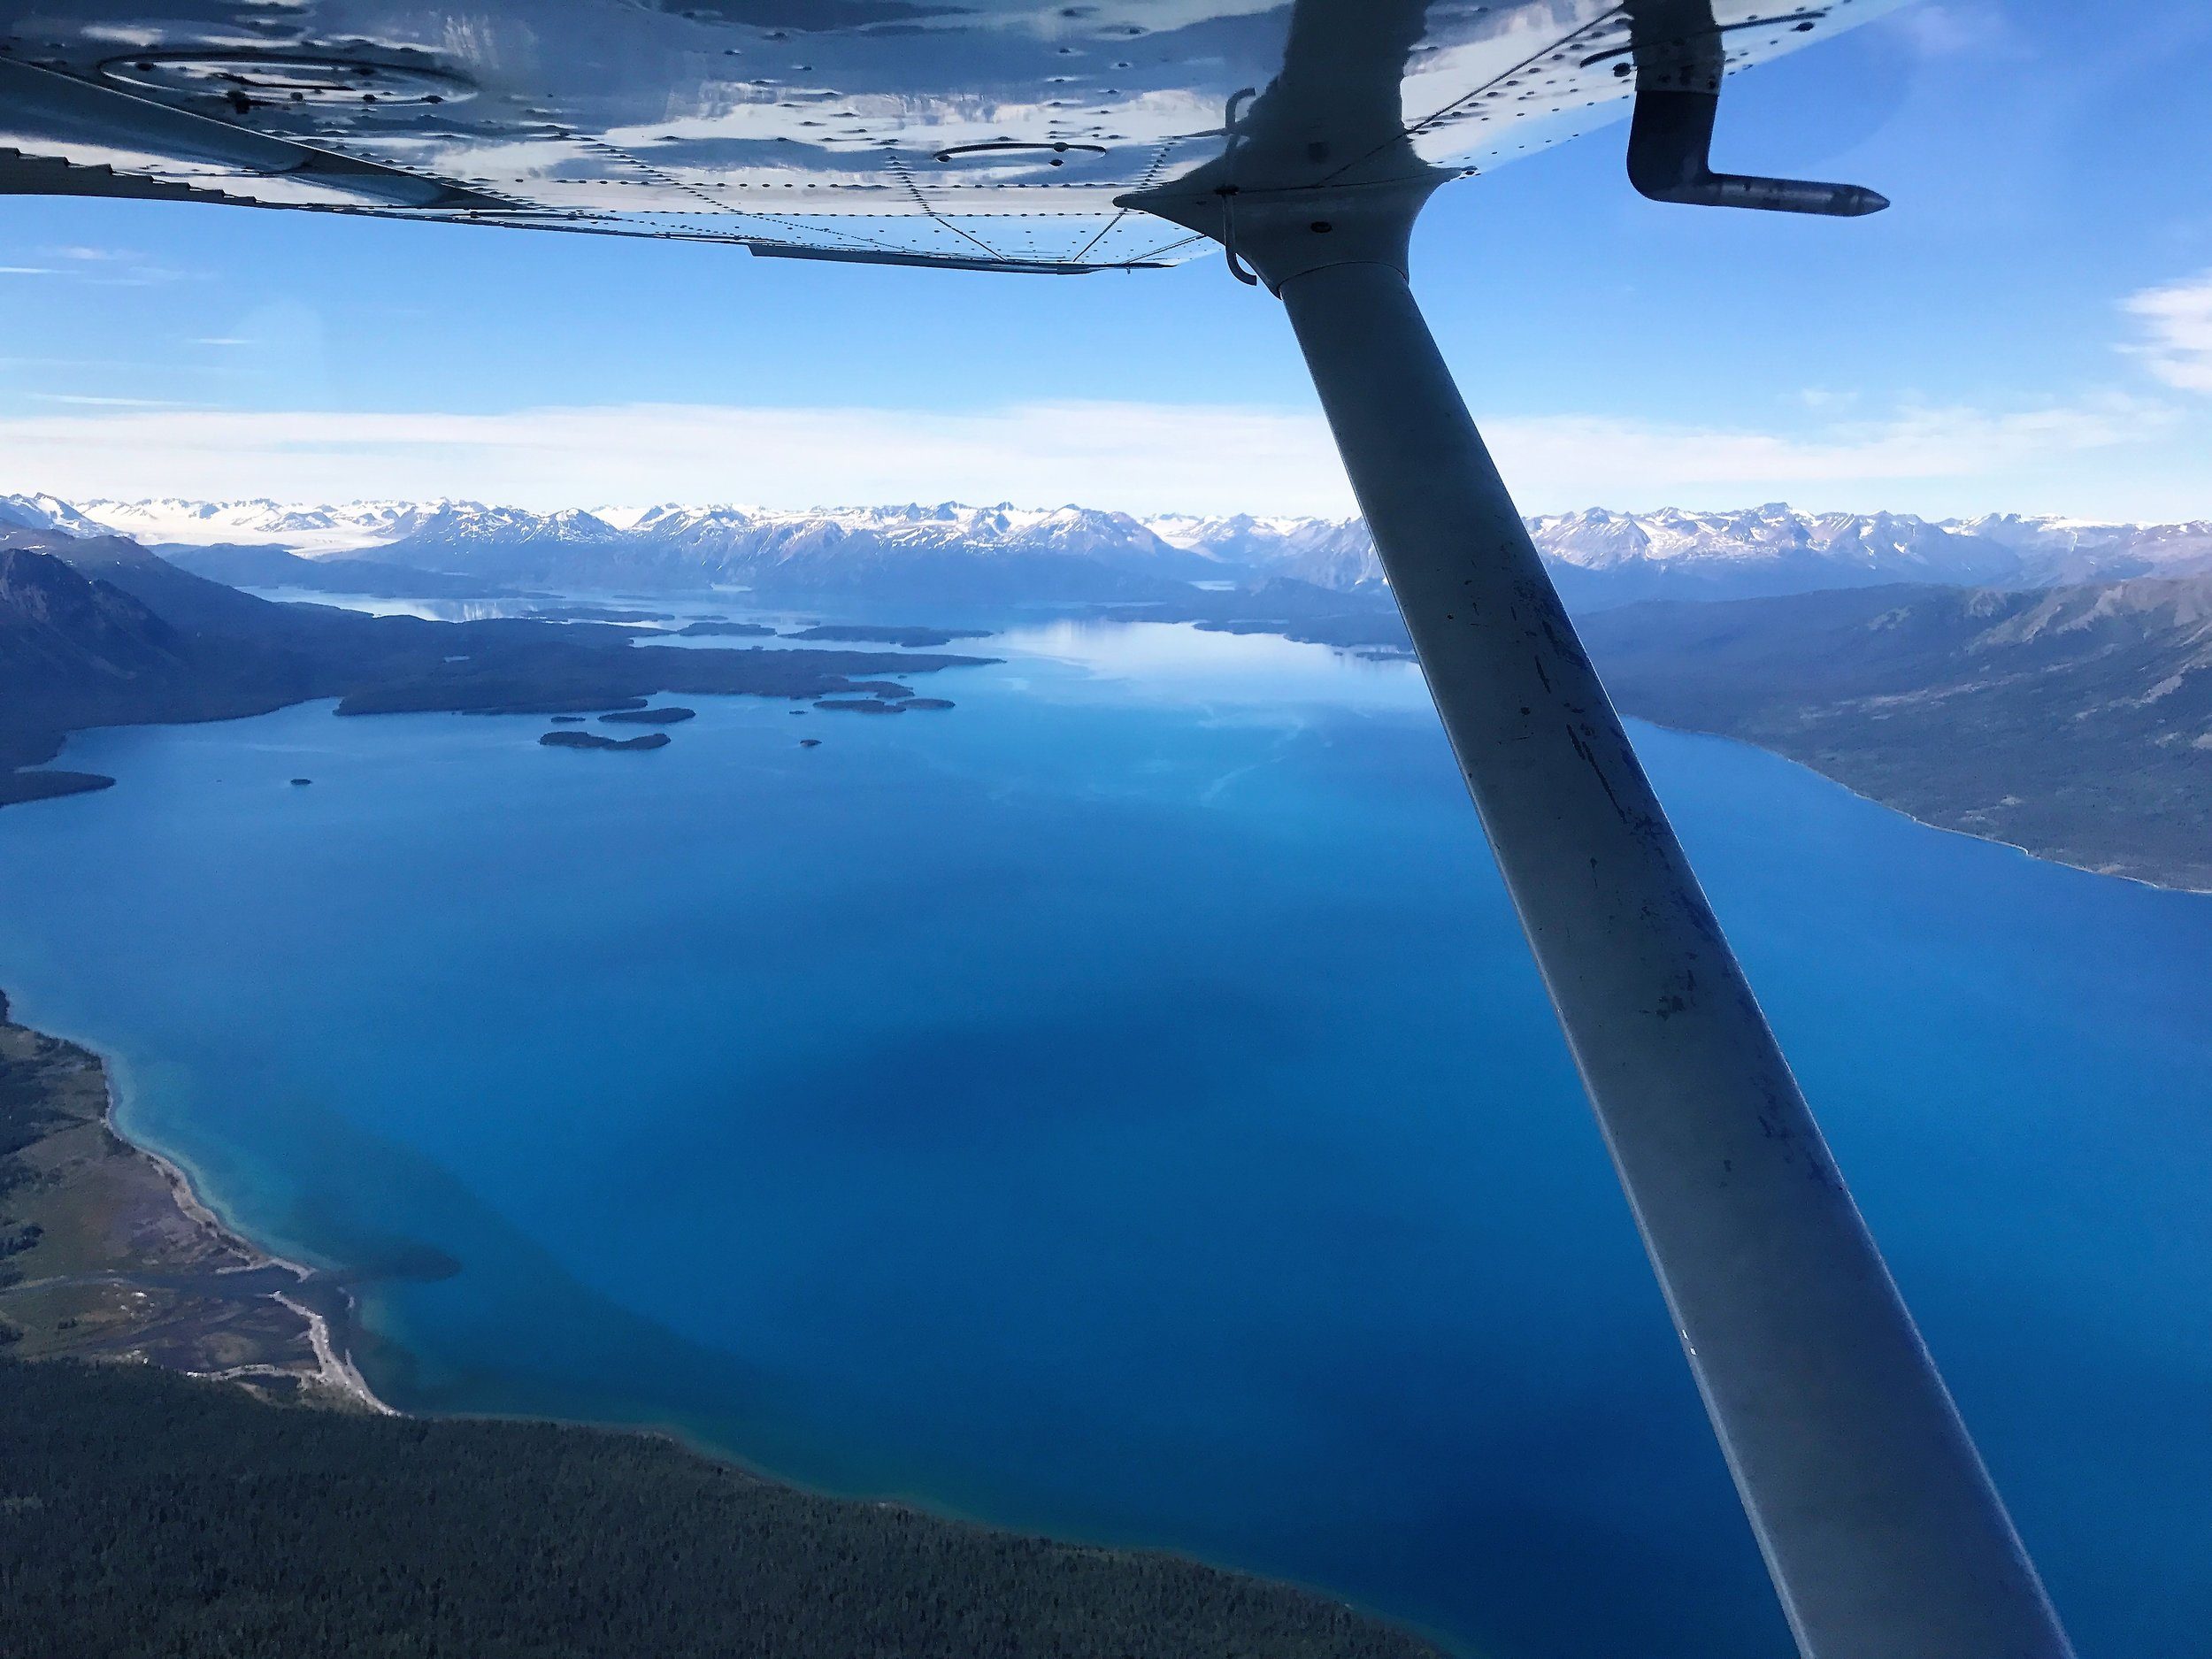 Ubearable beauty of the North (approaching Atlin)